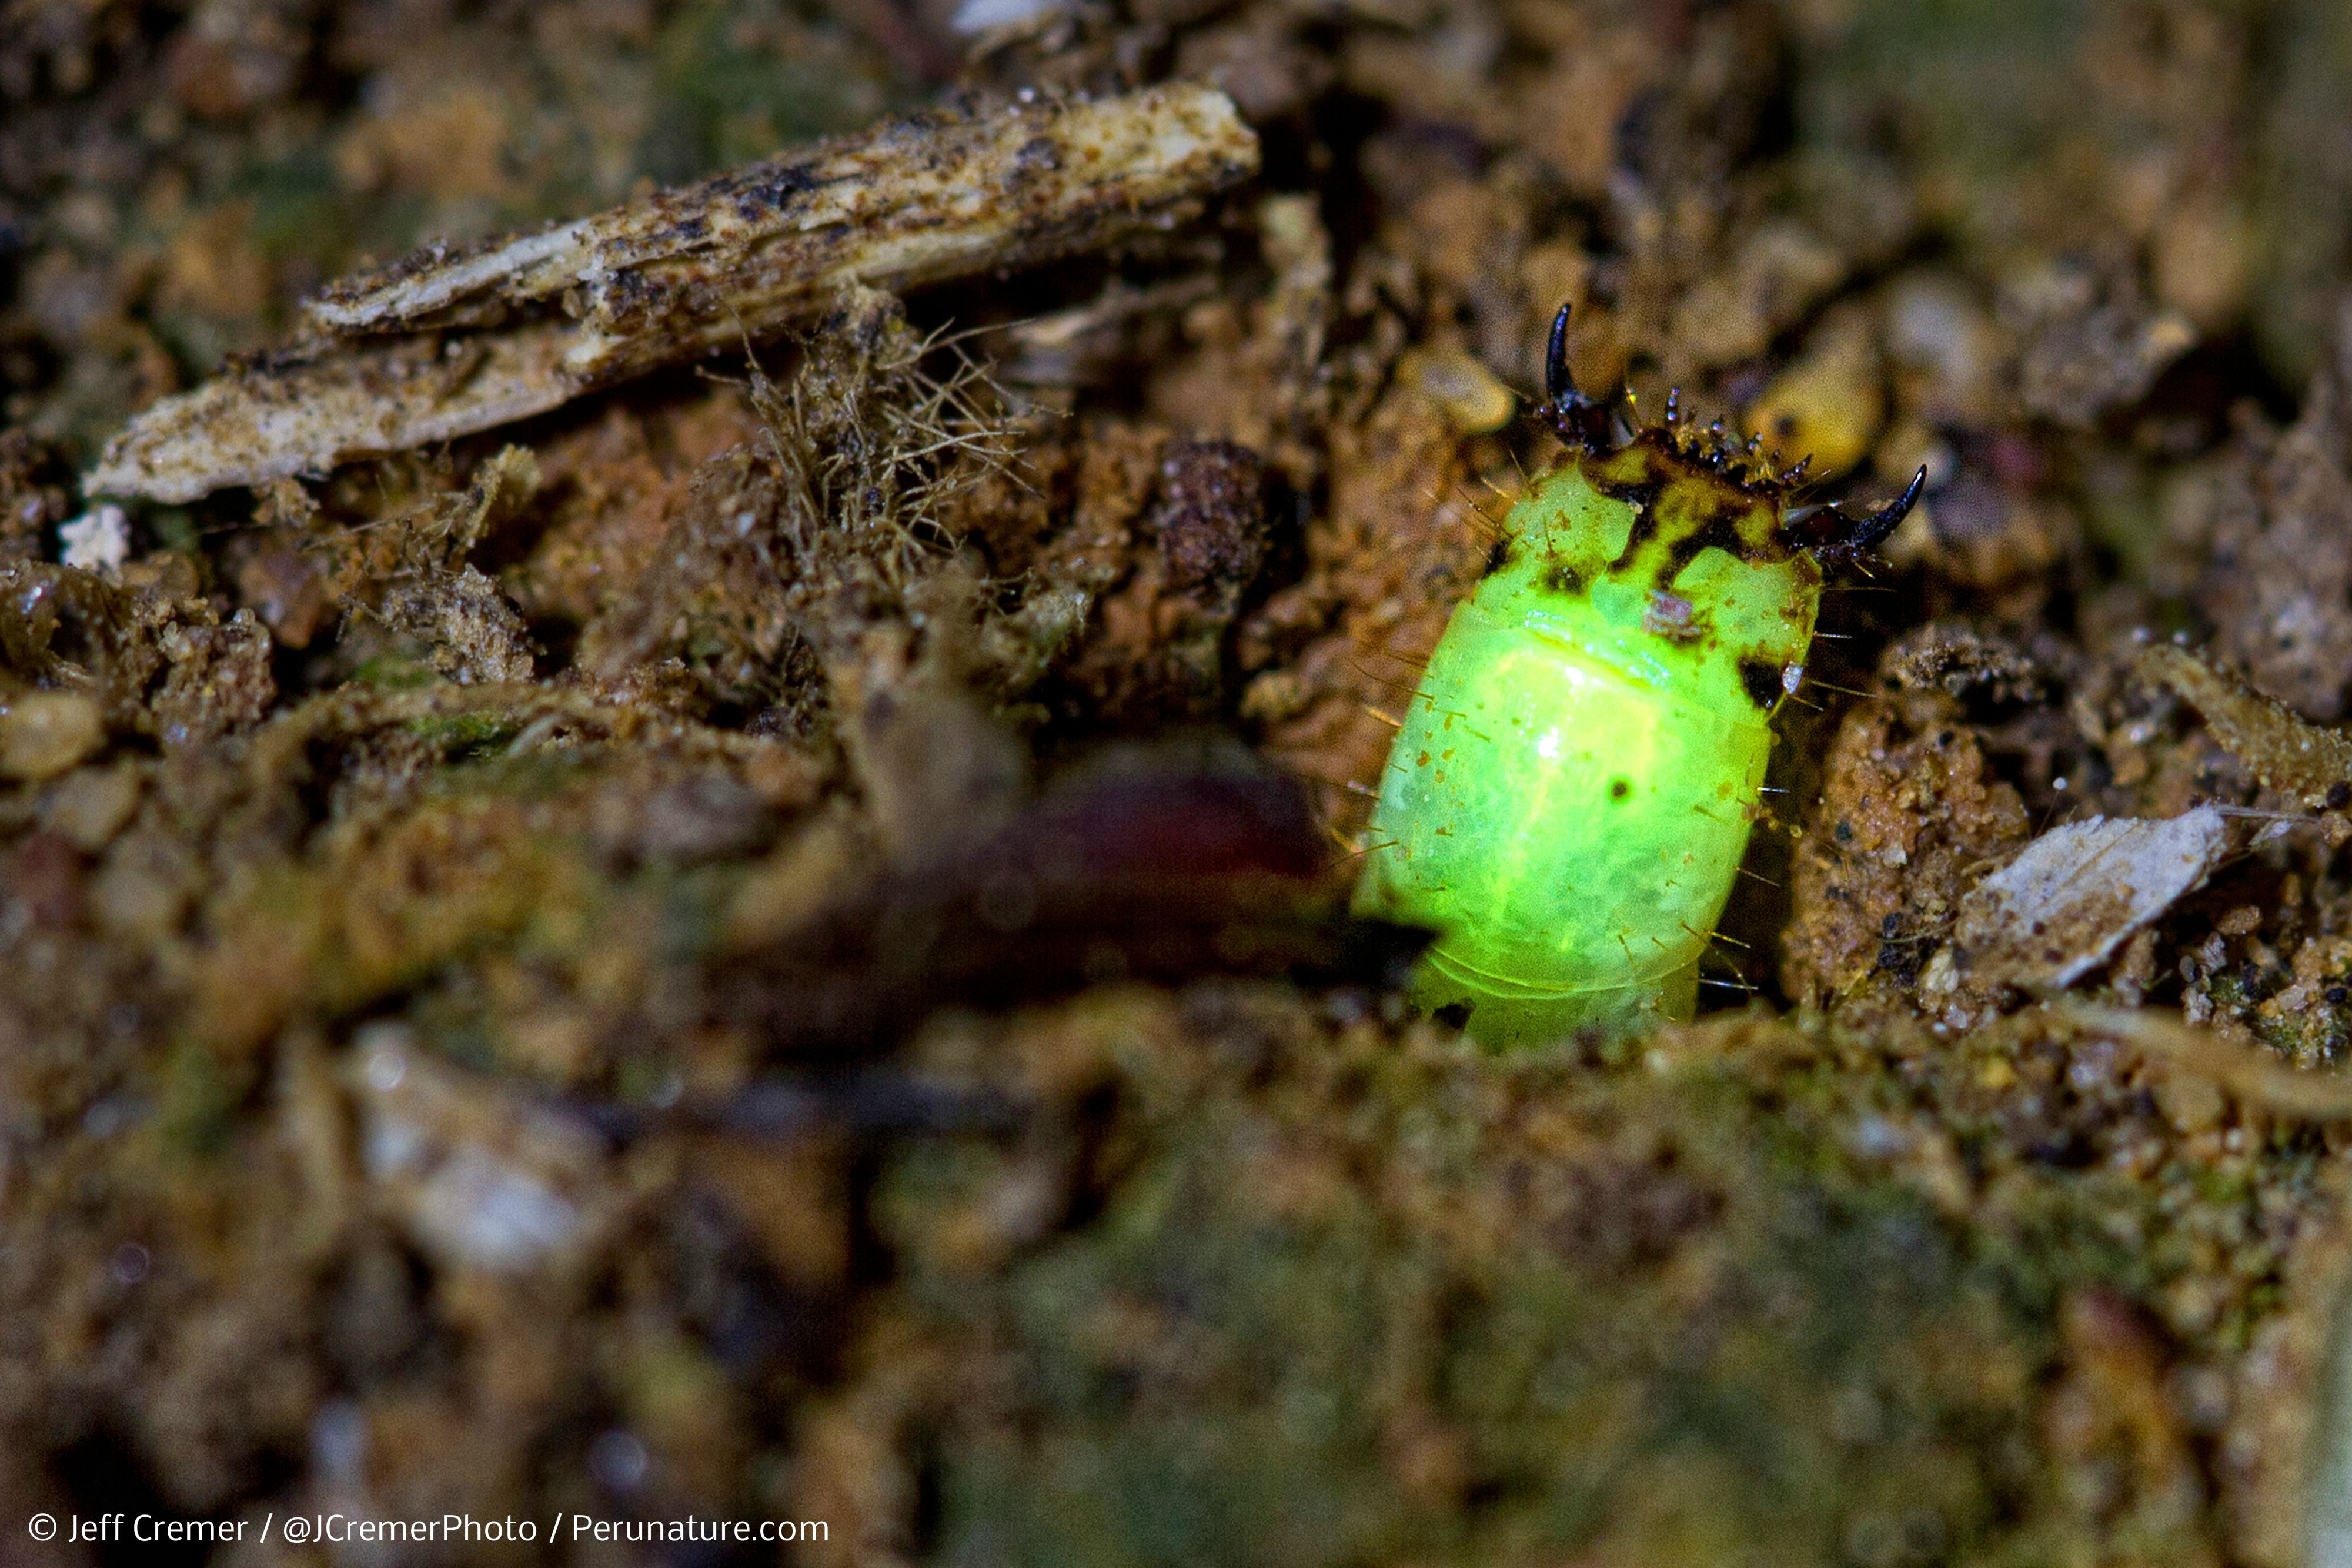 A New Species Of Predatory Glow Worm Discovered In The